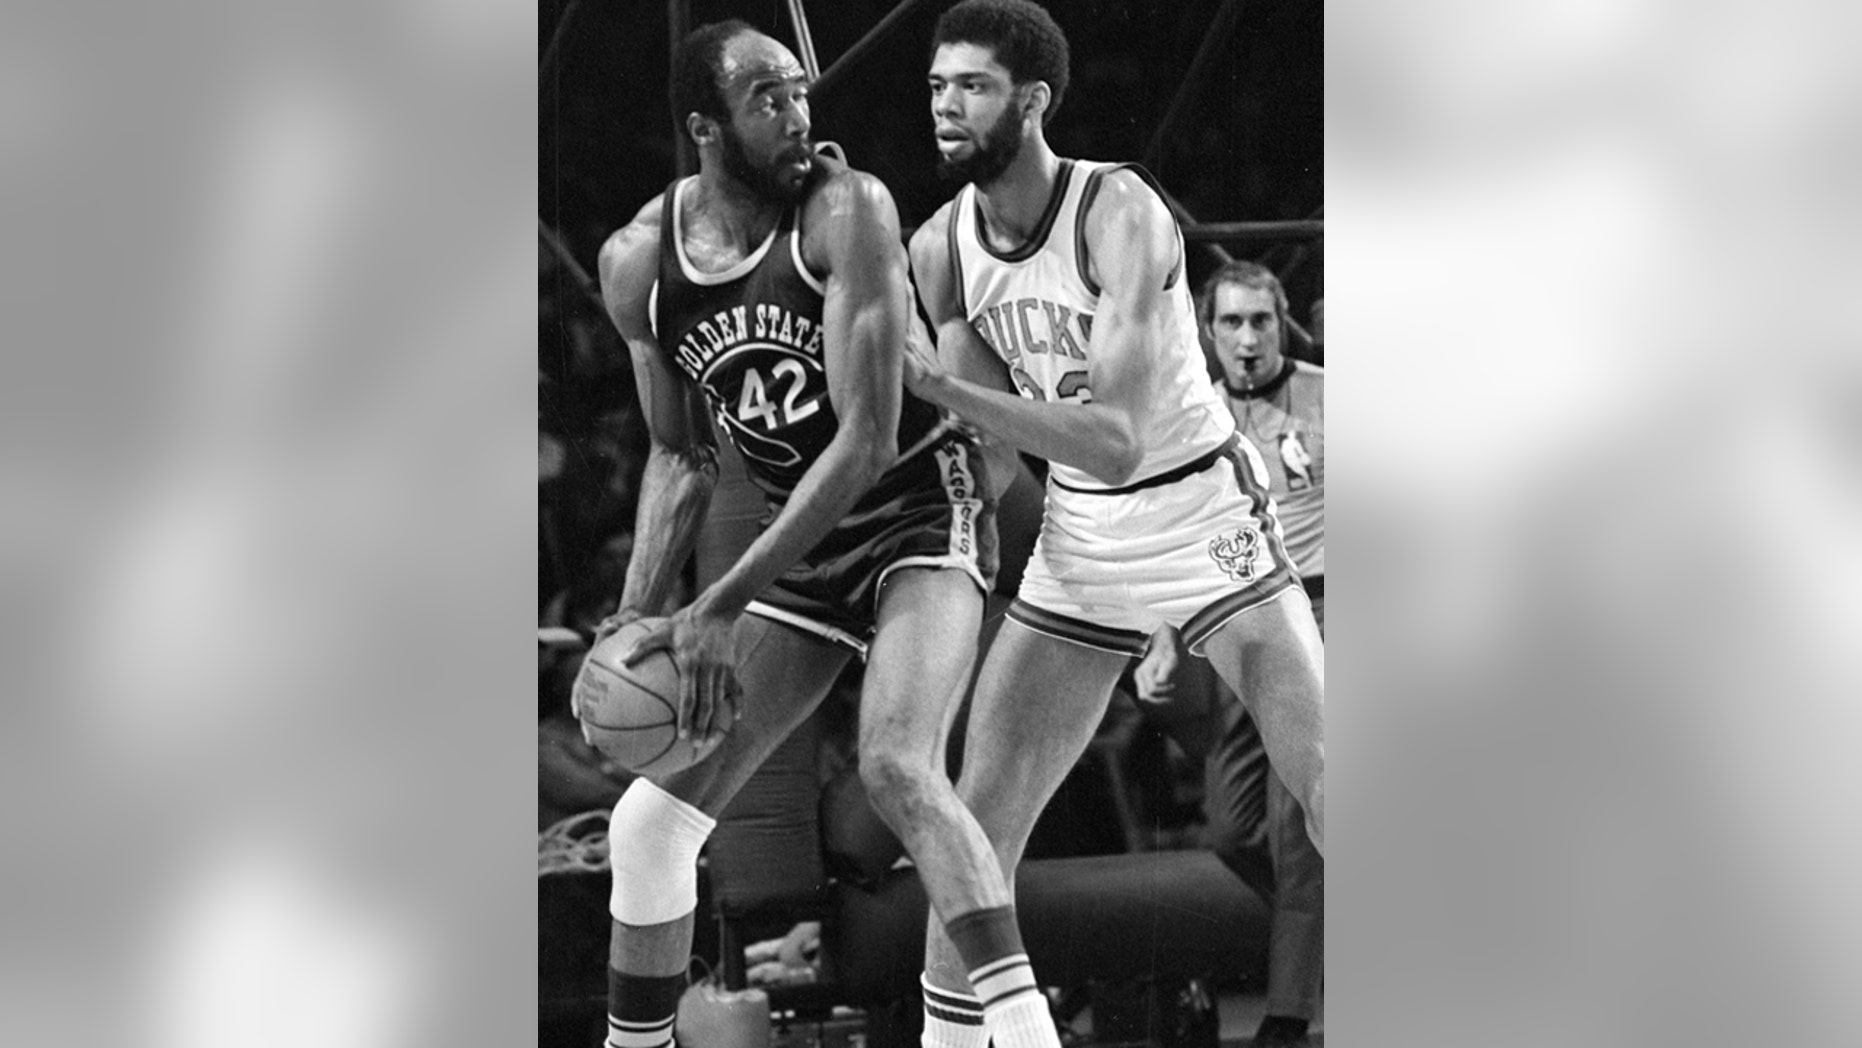 March 30, 1973: Nate Thurmond of the Golden State Warriors (42) looks back at Kareem Abdul-Jabbar of the Milwaukee Bucks before making his move toward the basket during NBA playoff action at Milwaukee, Wis.